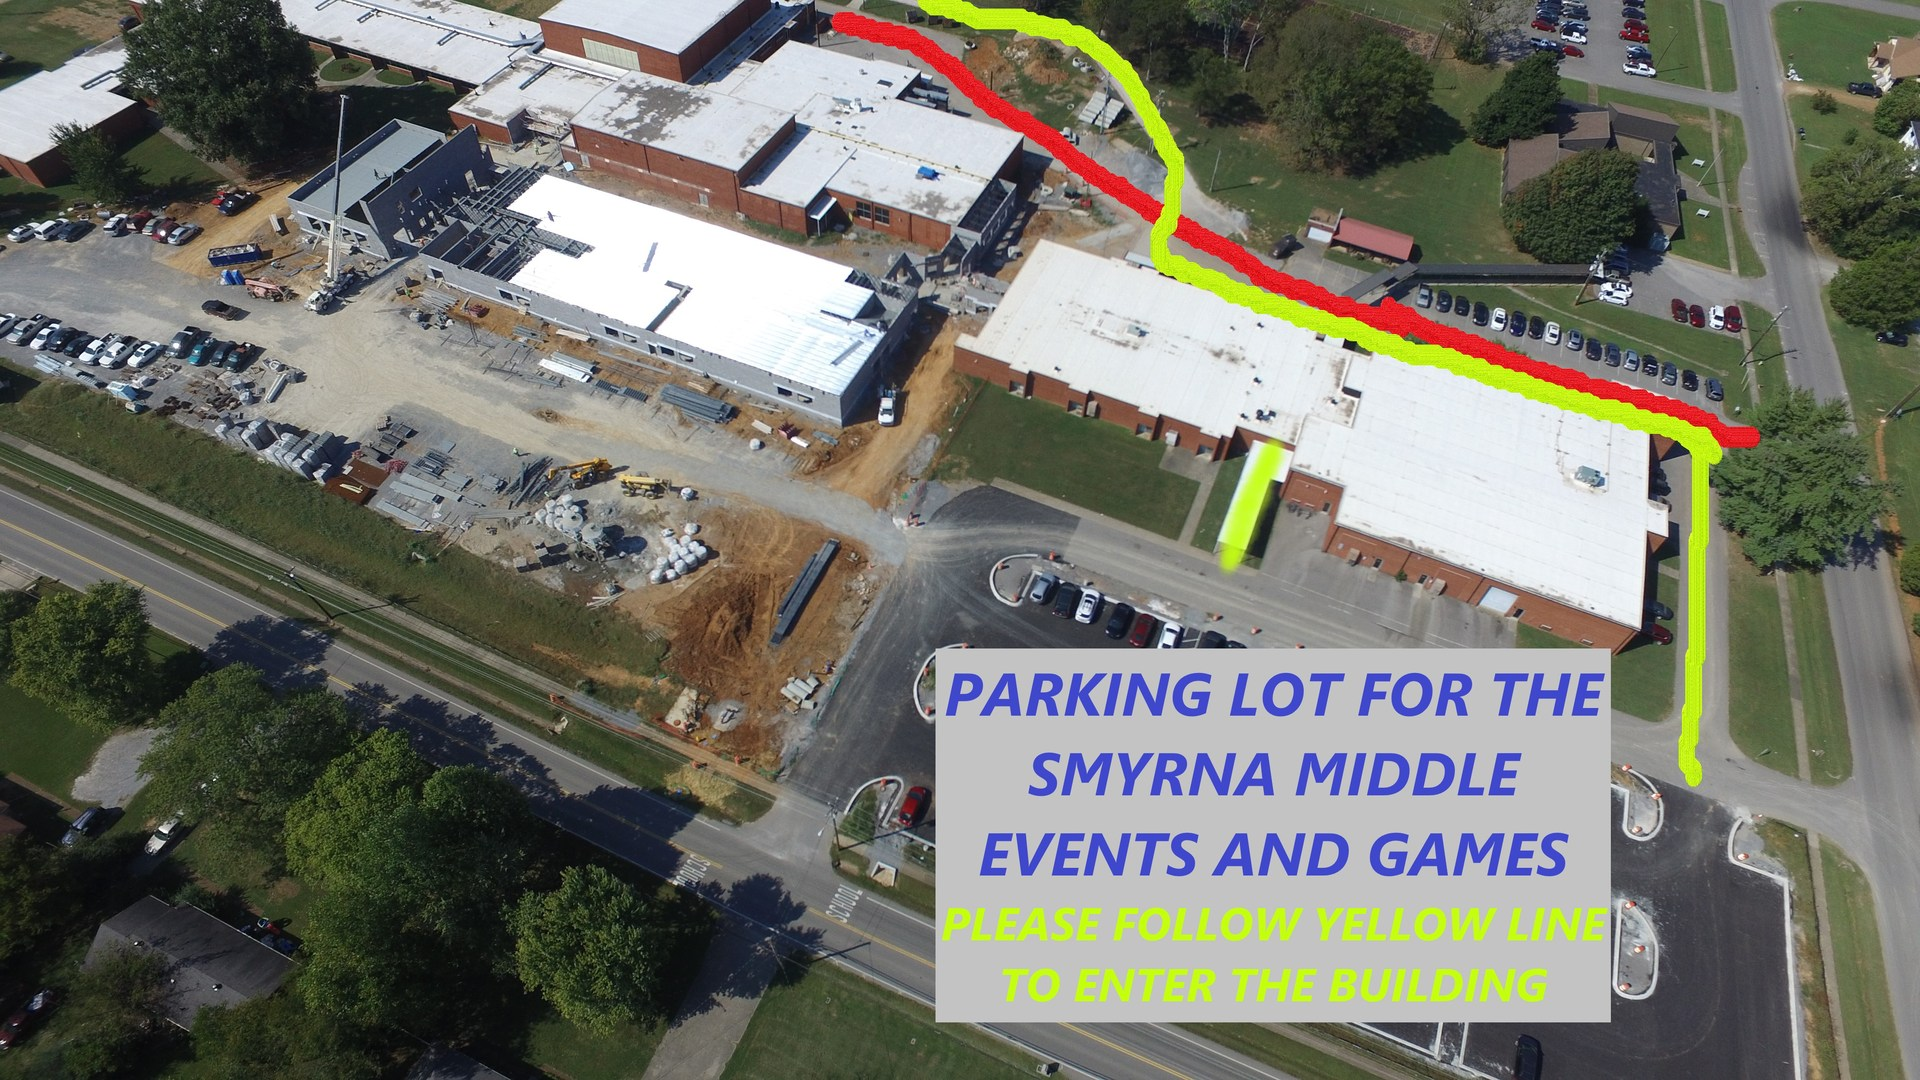 One Parking lot for Smyrna Middle School Events is out front of the SMS Annex. The secondary parking lot is at Smyrna Primary and the third parking lot is Thurman Francis.